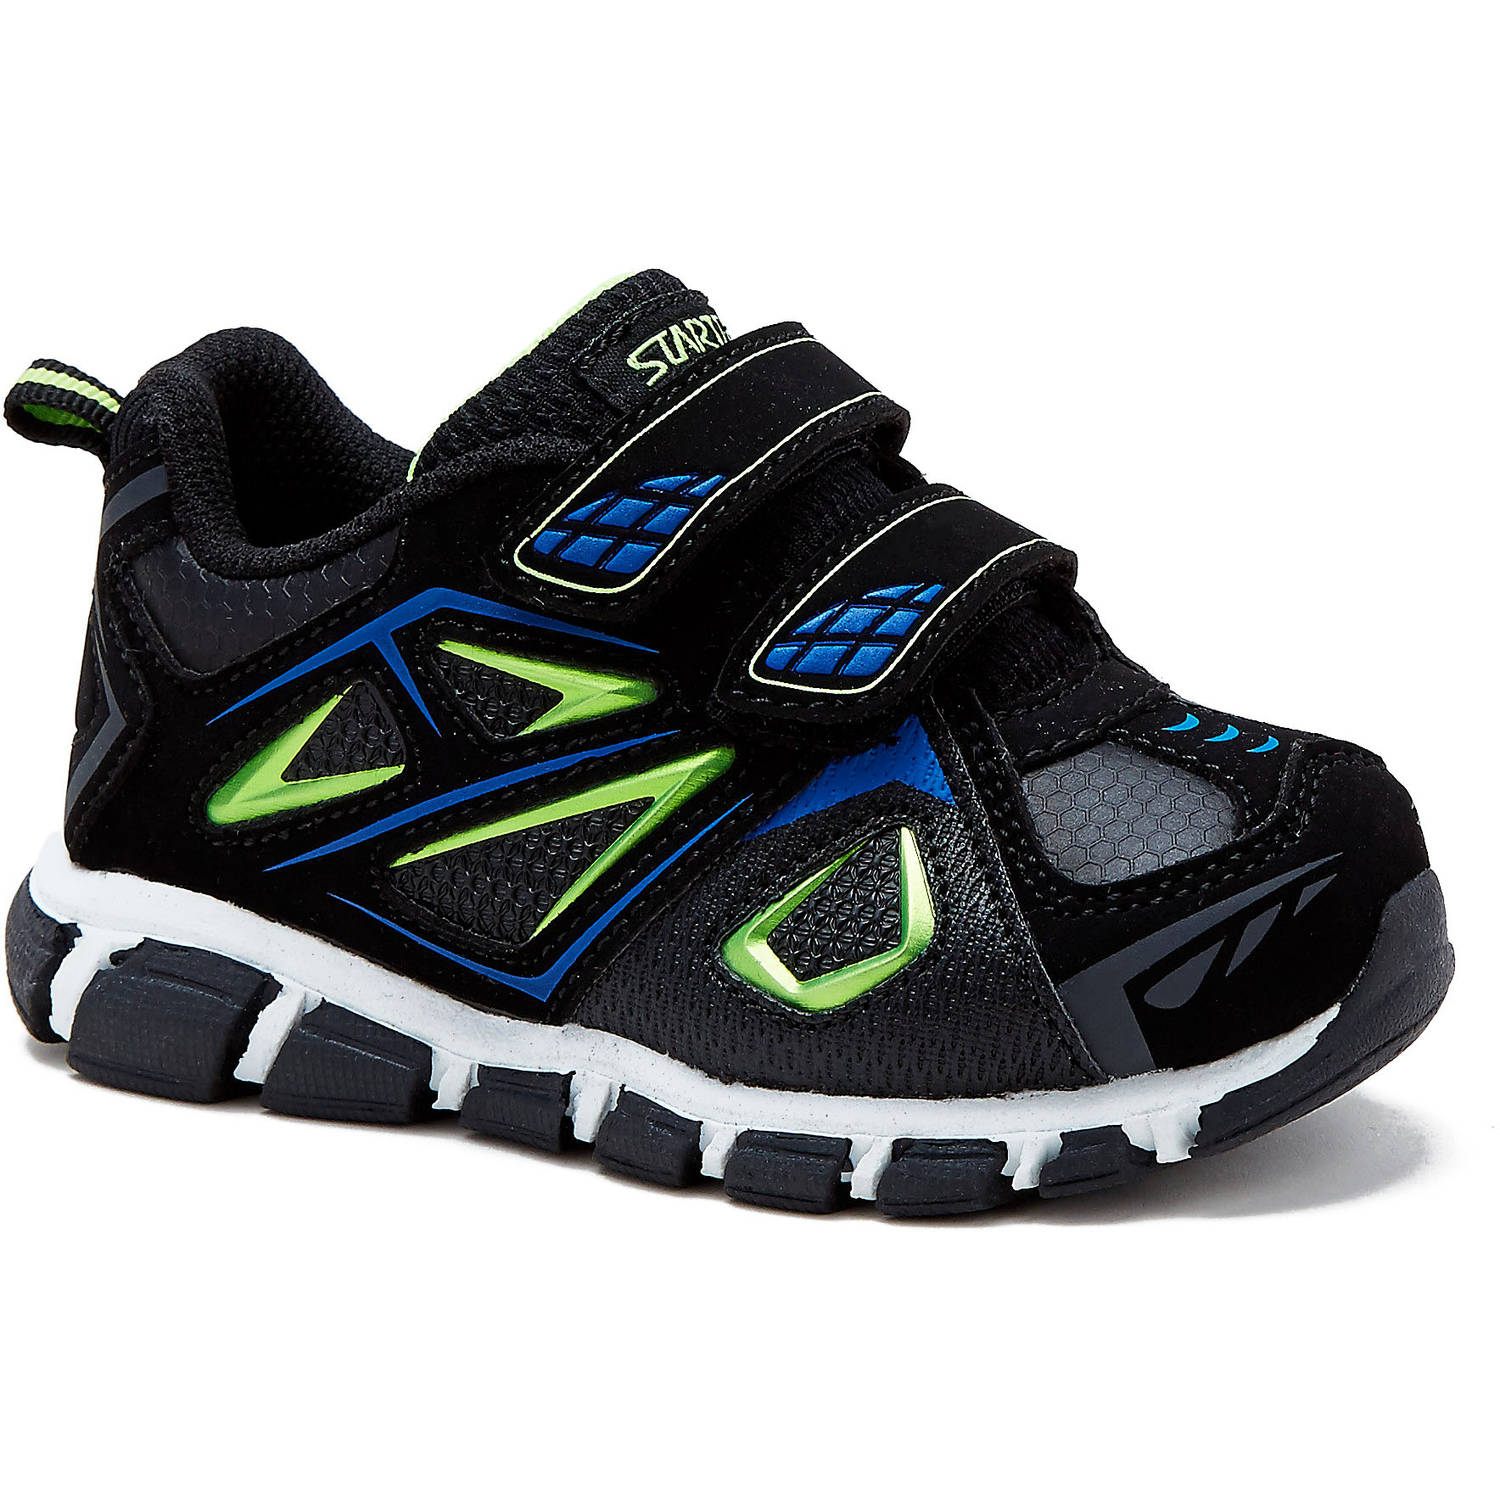 Starter Toddler Boys 2-Strap Athletic Shoe